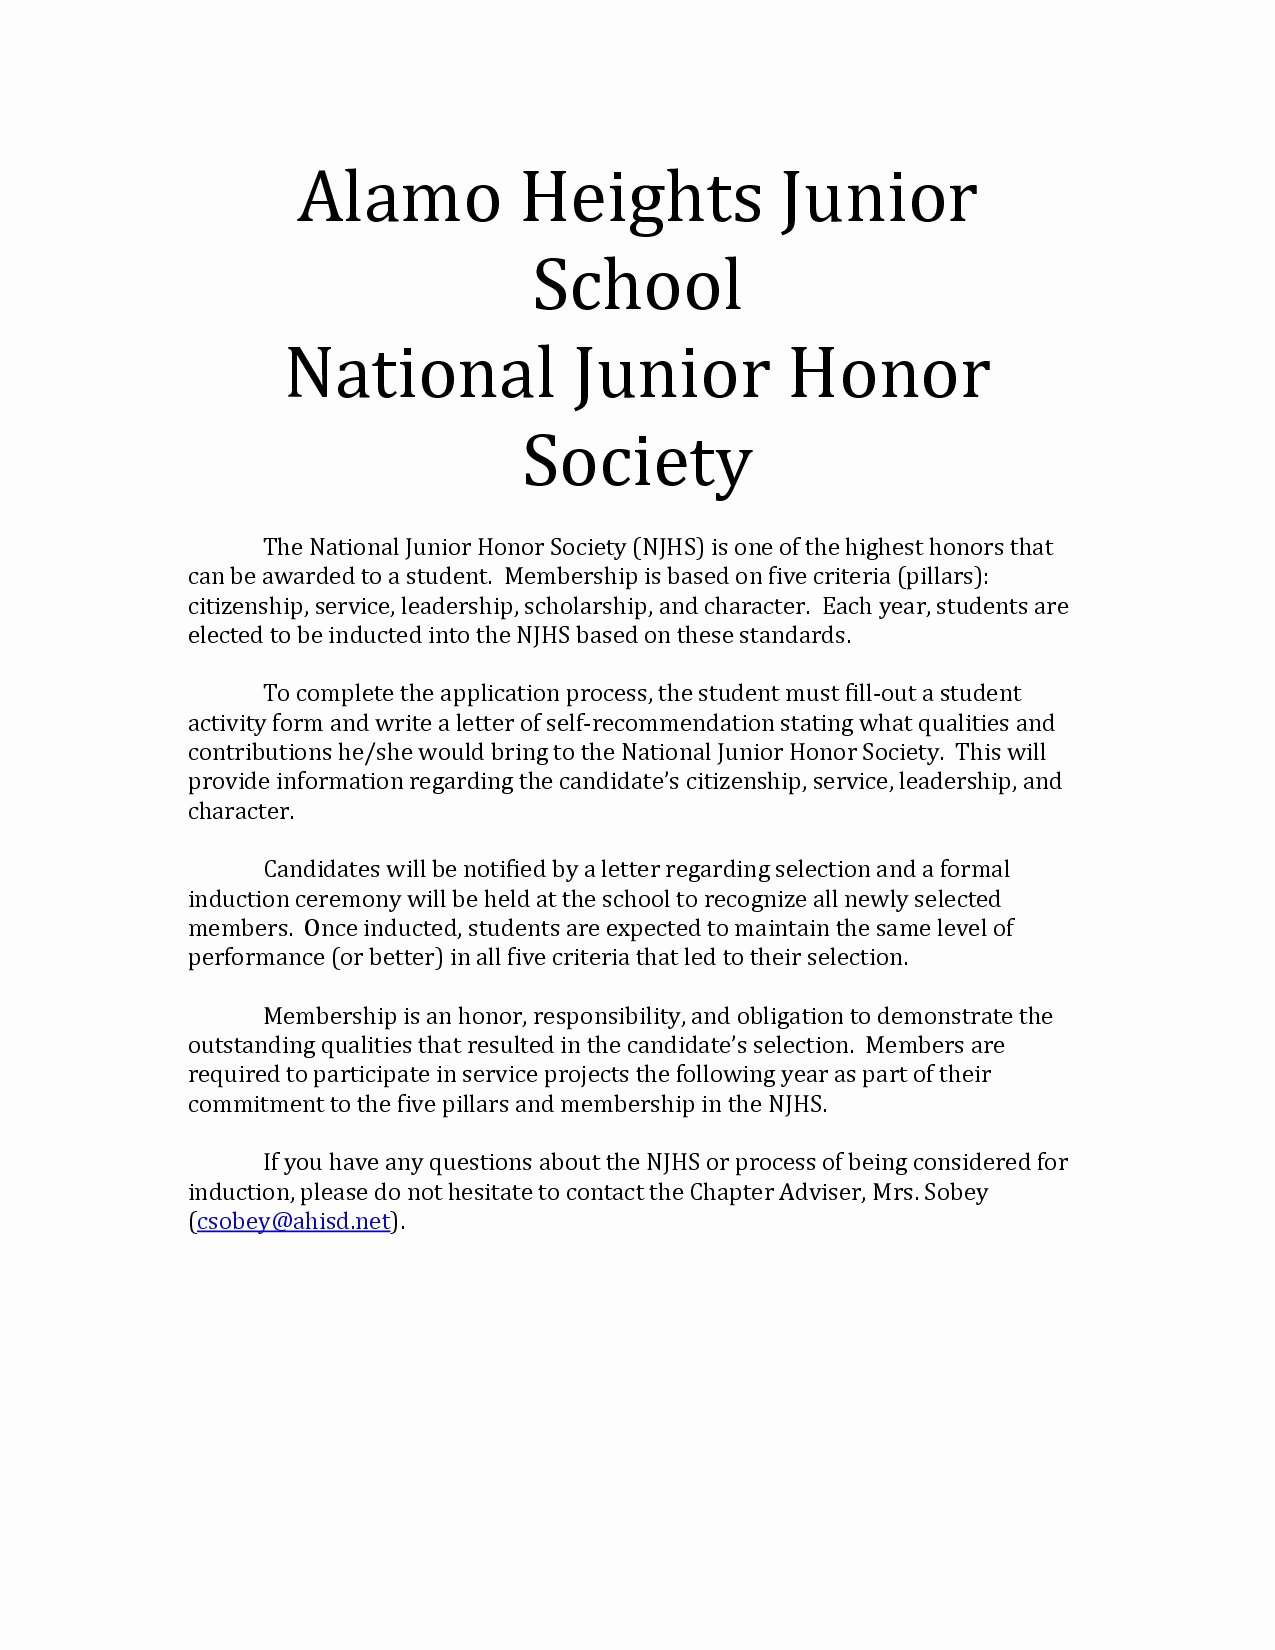 Recommendation Letter for Honor society Best Of Letter Re Mendation National Honor society